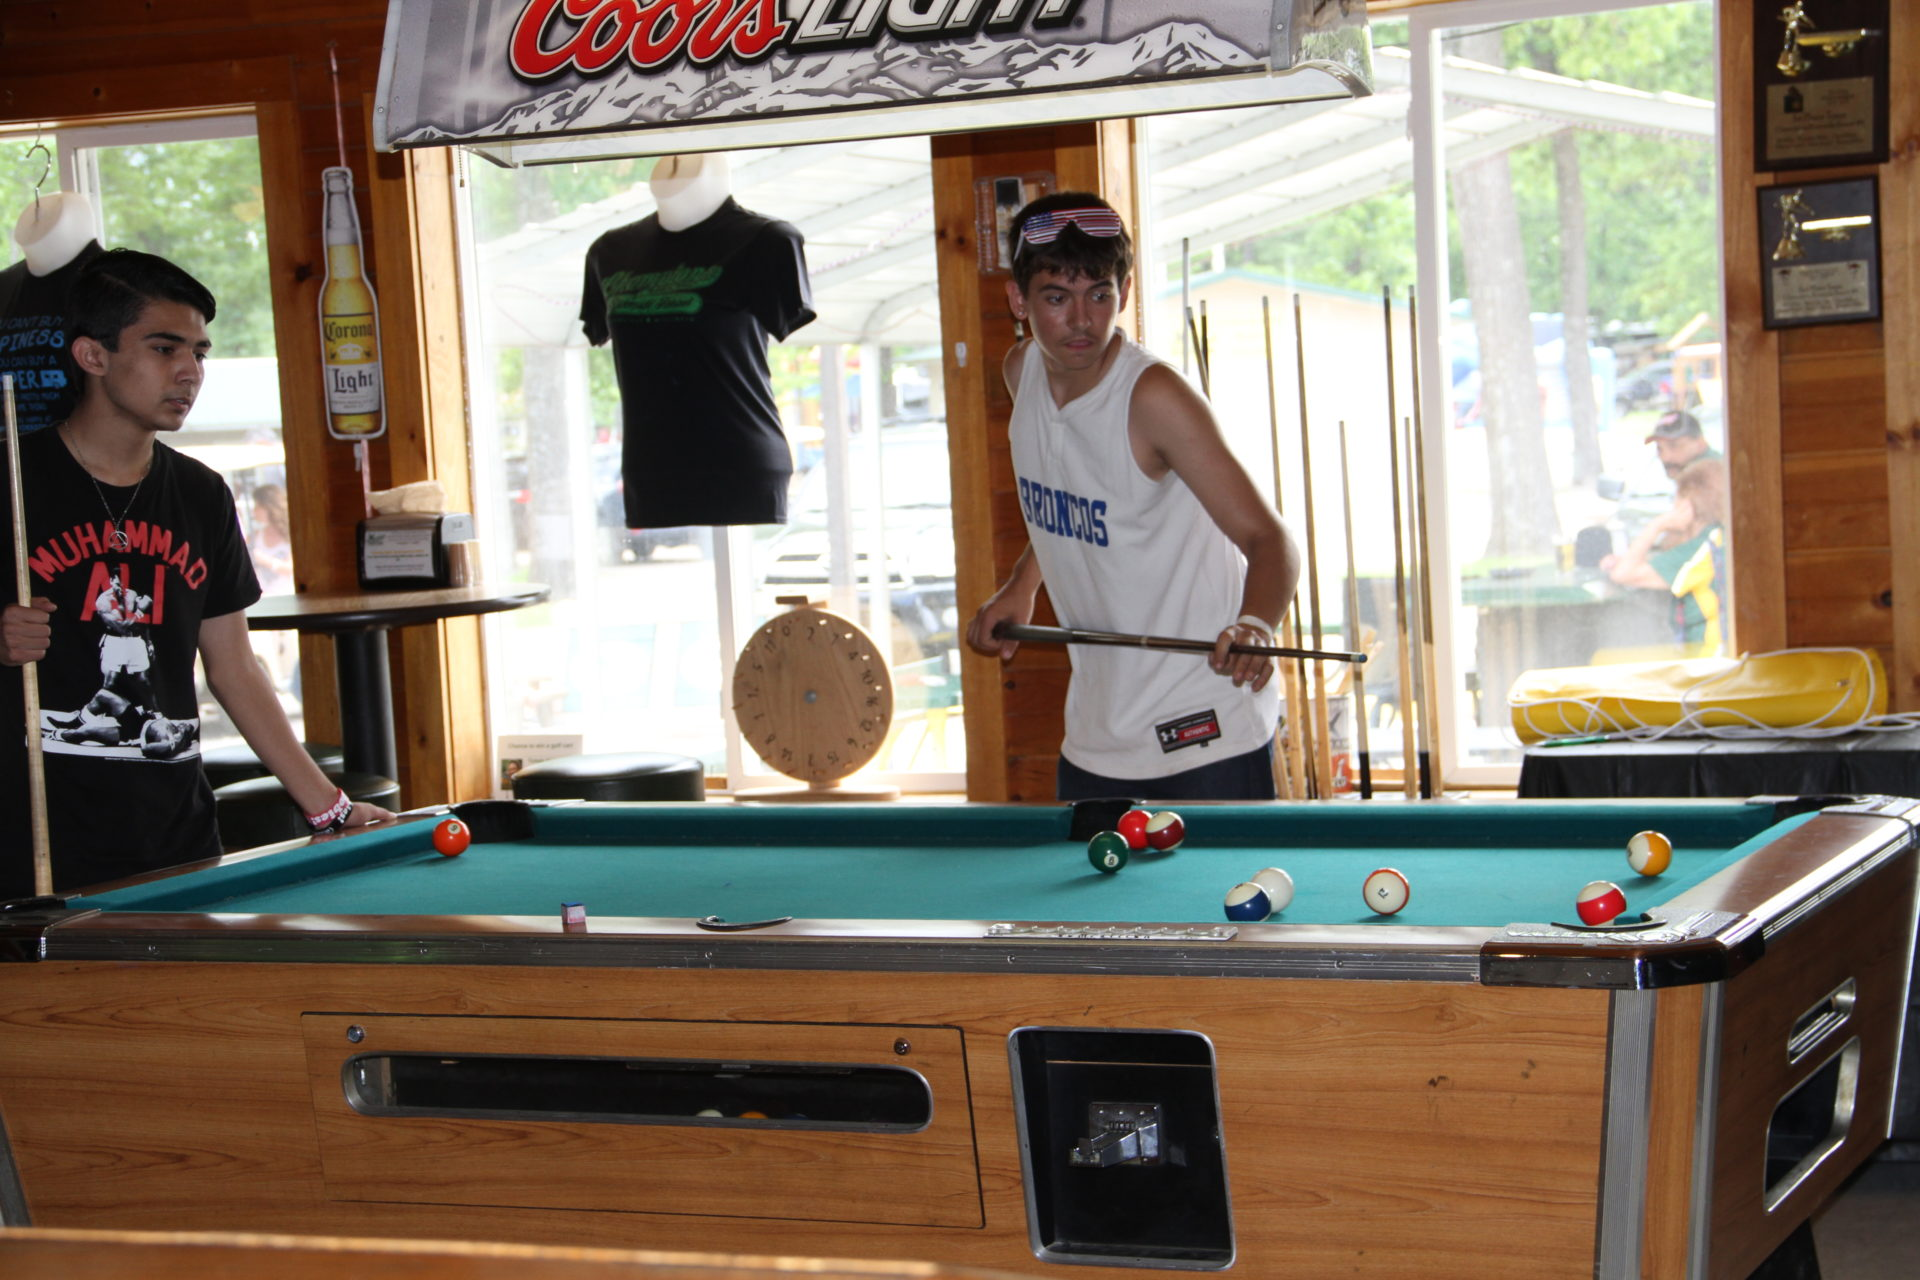 2016-05-30 Two Young Men Playing Pool Inside of Champions